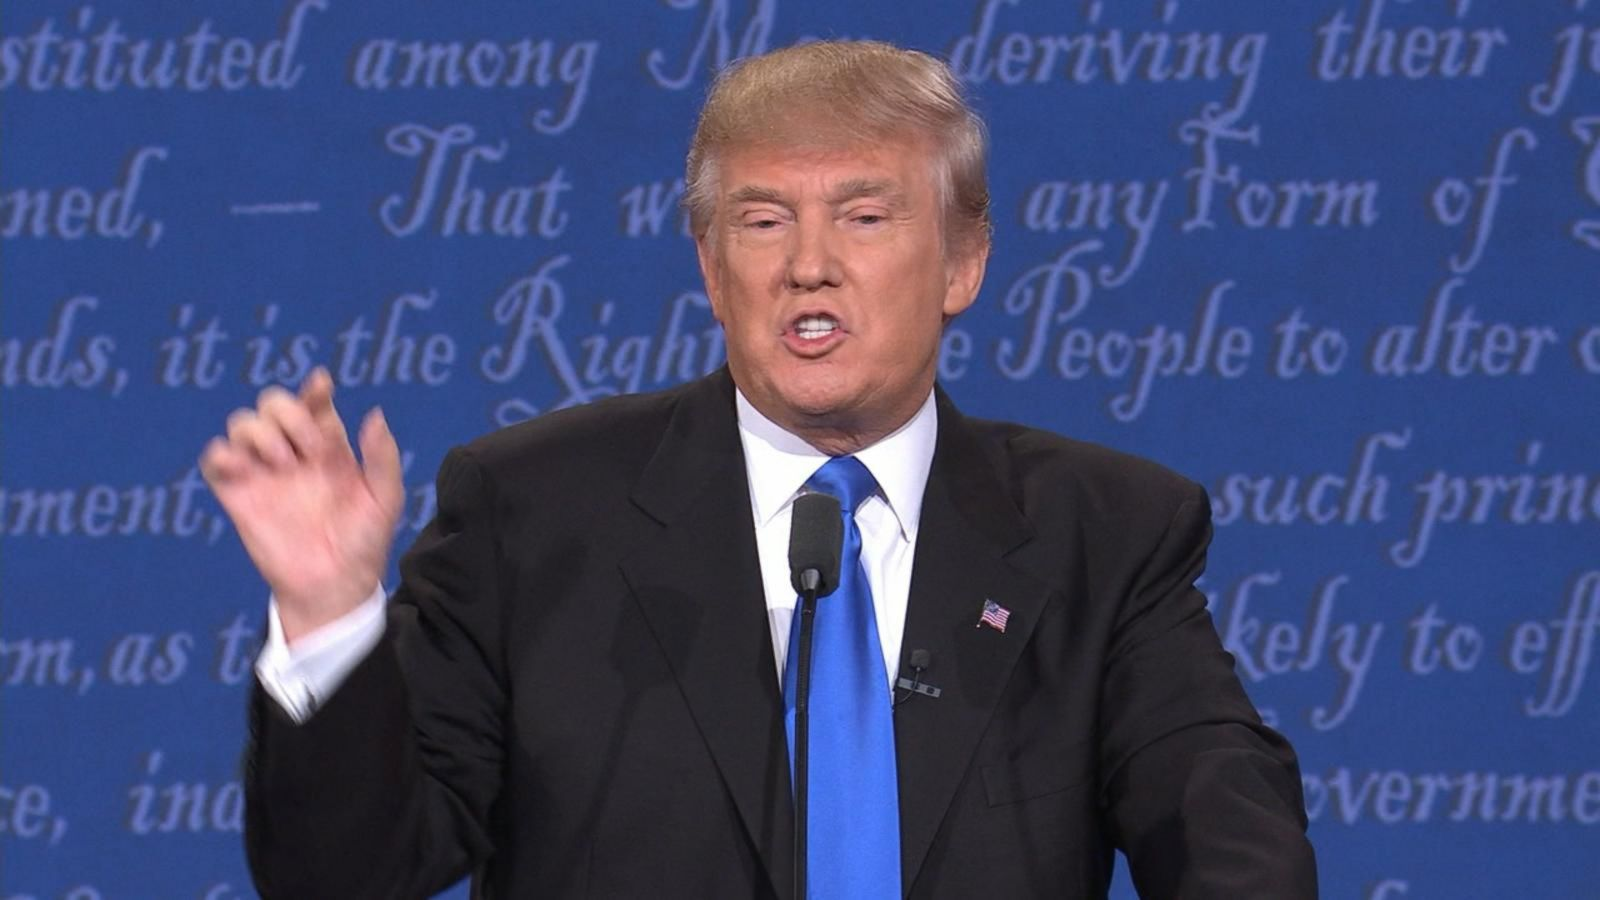 VIDEO: Donald Trump Changes Reaction to 1st Debate